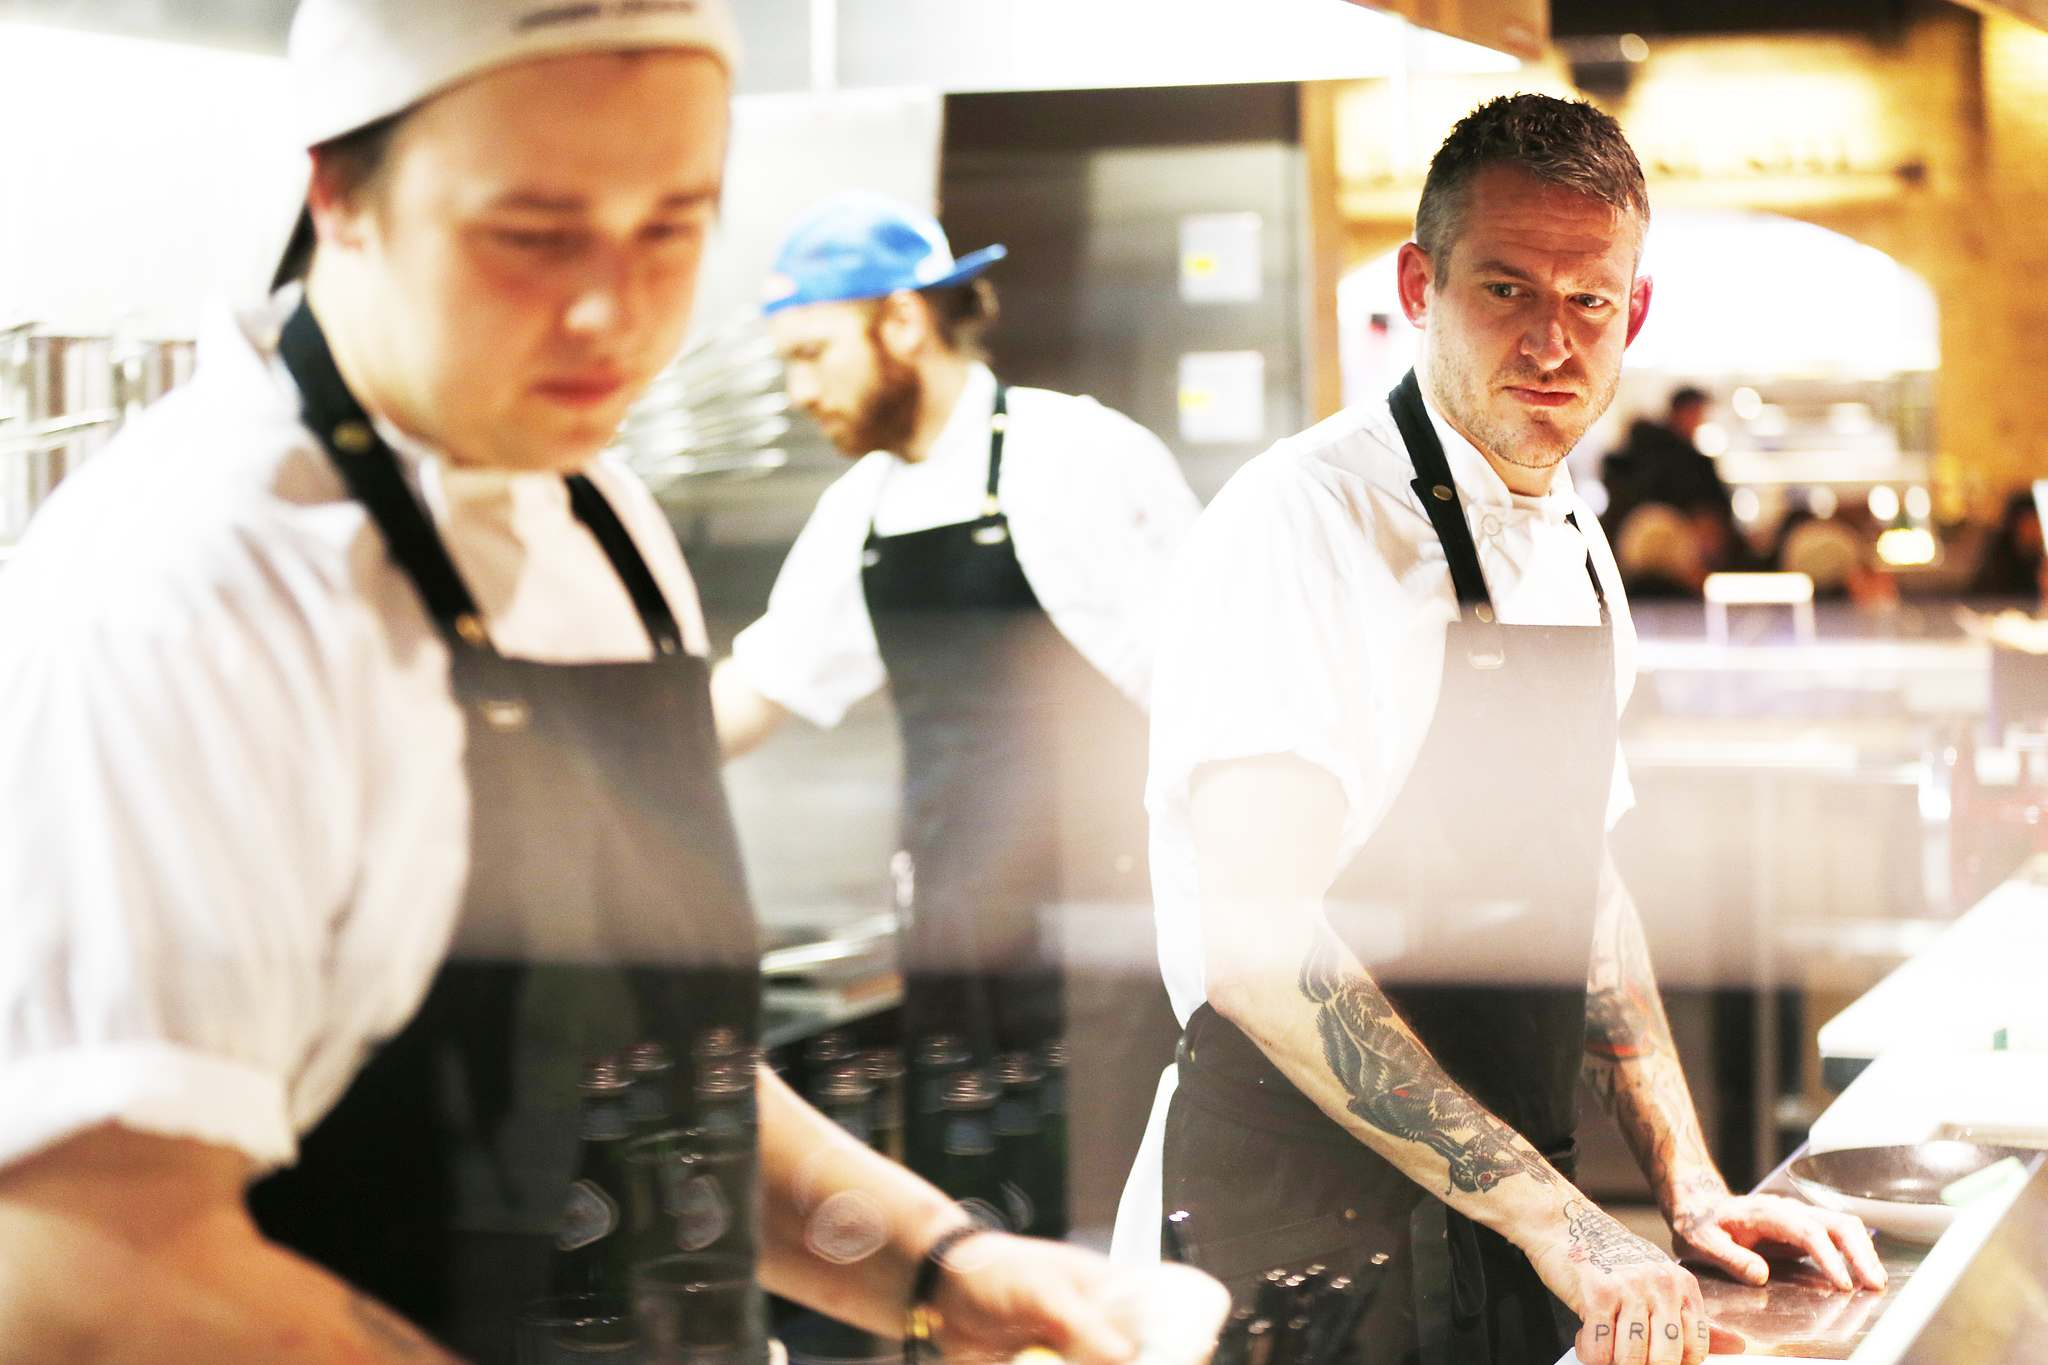 JOHN WOODS / WINNIPEG FREE PRESS</p><p>Chef Scott Bagshaw (right) oversees the line with line cooks Cody Meindl (left) and Scott Ball at Passero in The Forks.</p>